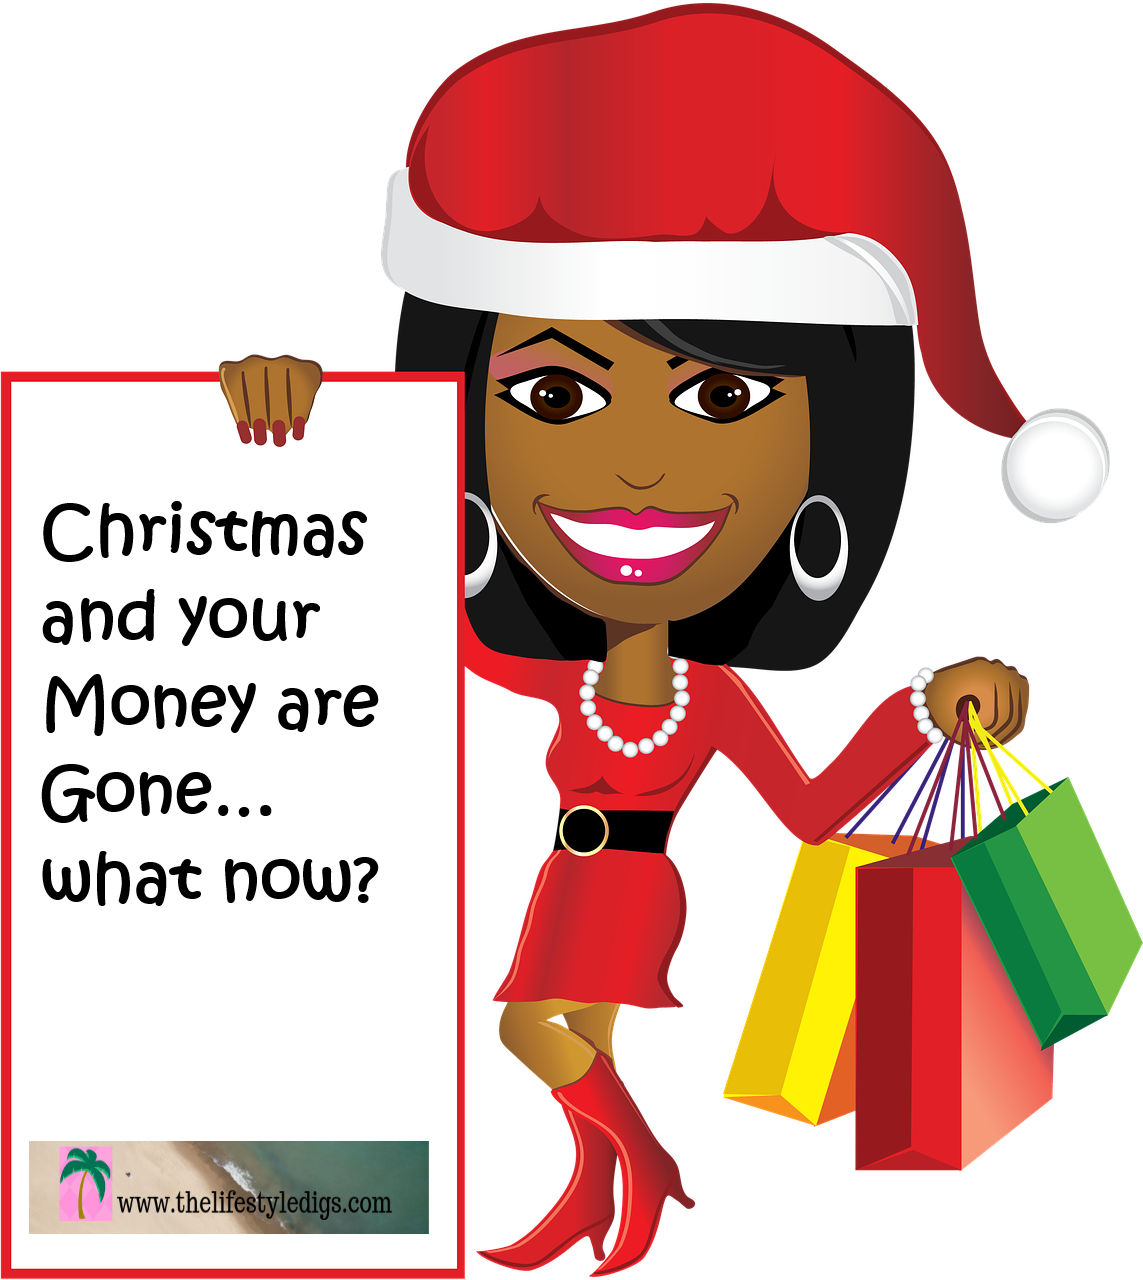 Christmas and your Money are Gone… what now?